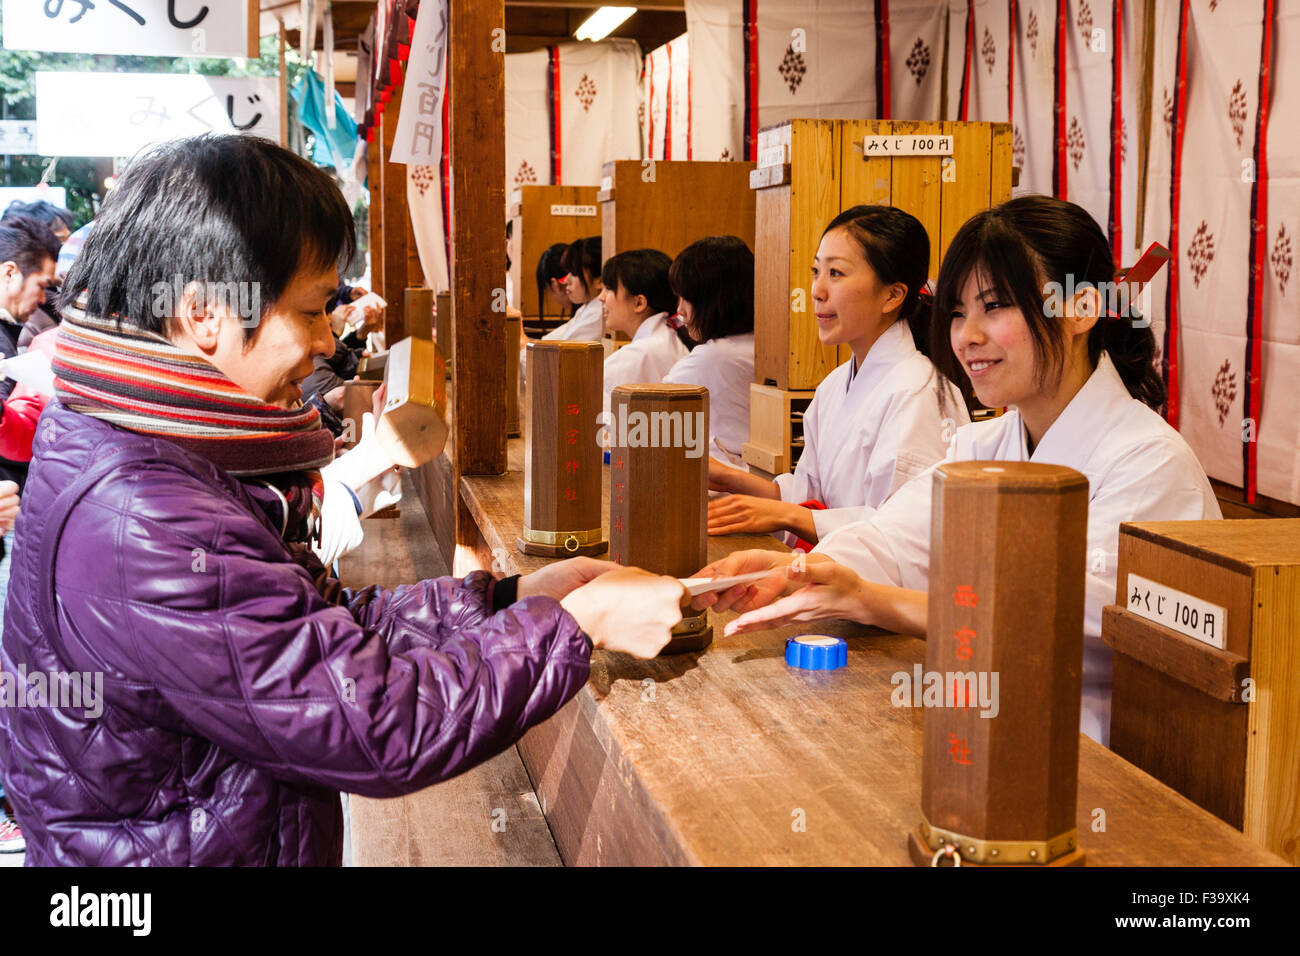 Japan, Nishinomiya shrine, New year Day, Shogatsu. Woman buying omikuji fortune papers from Miko, shrine maiden, - Stock Image